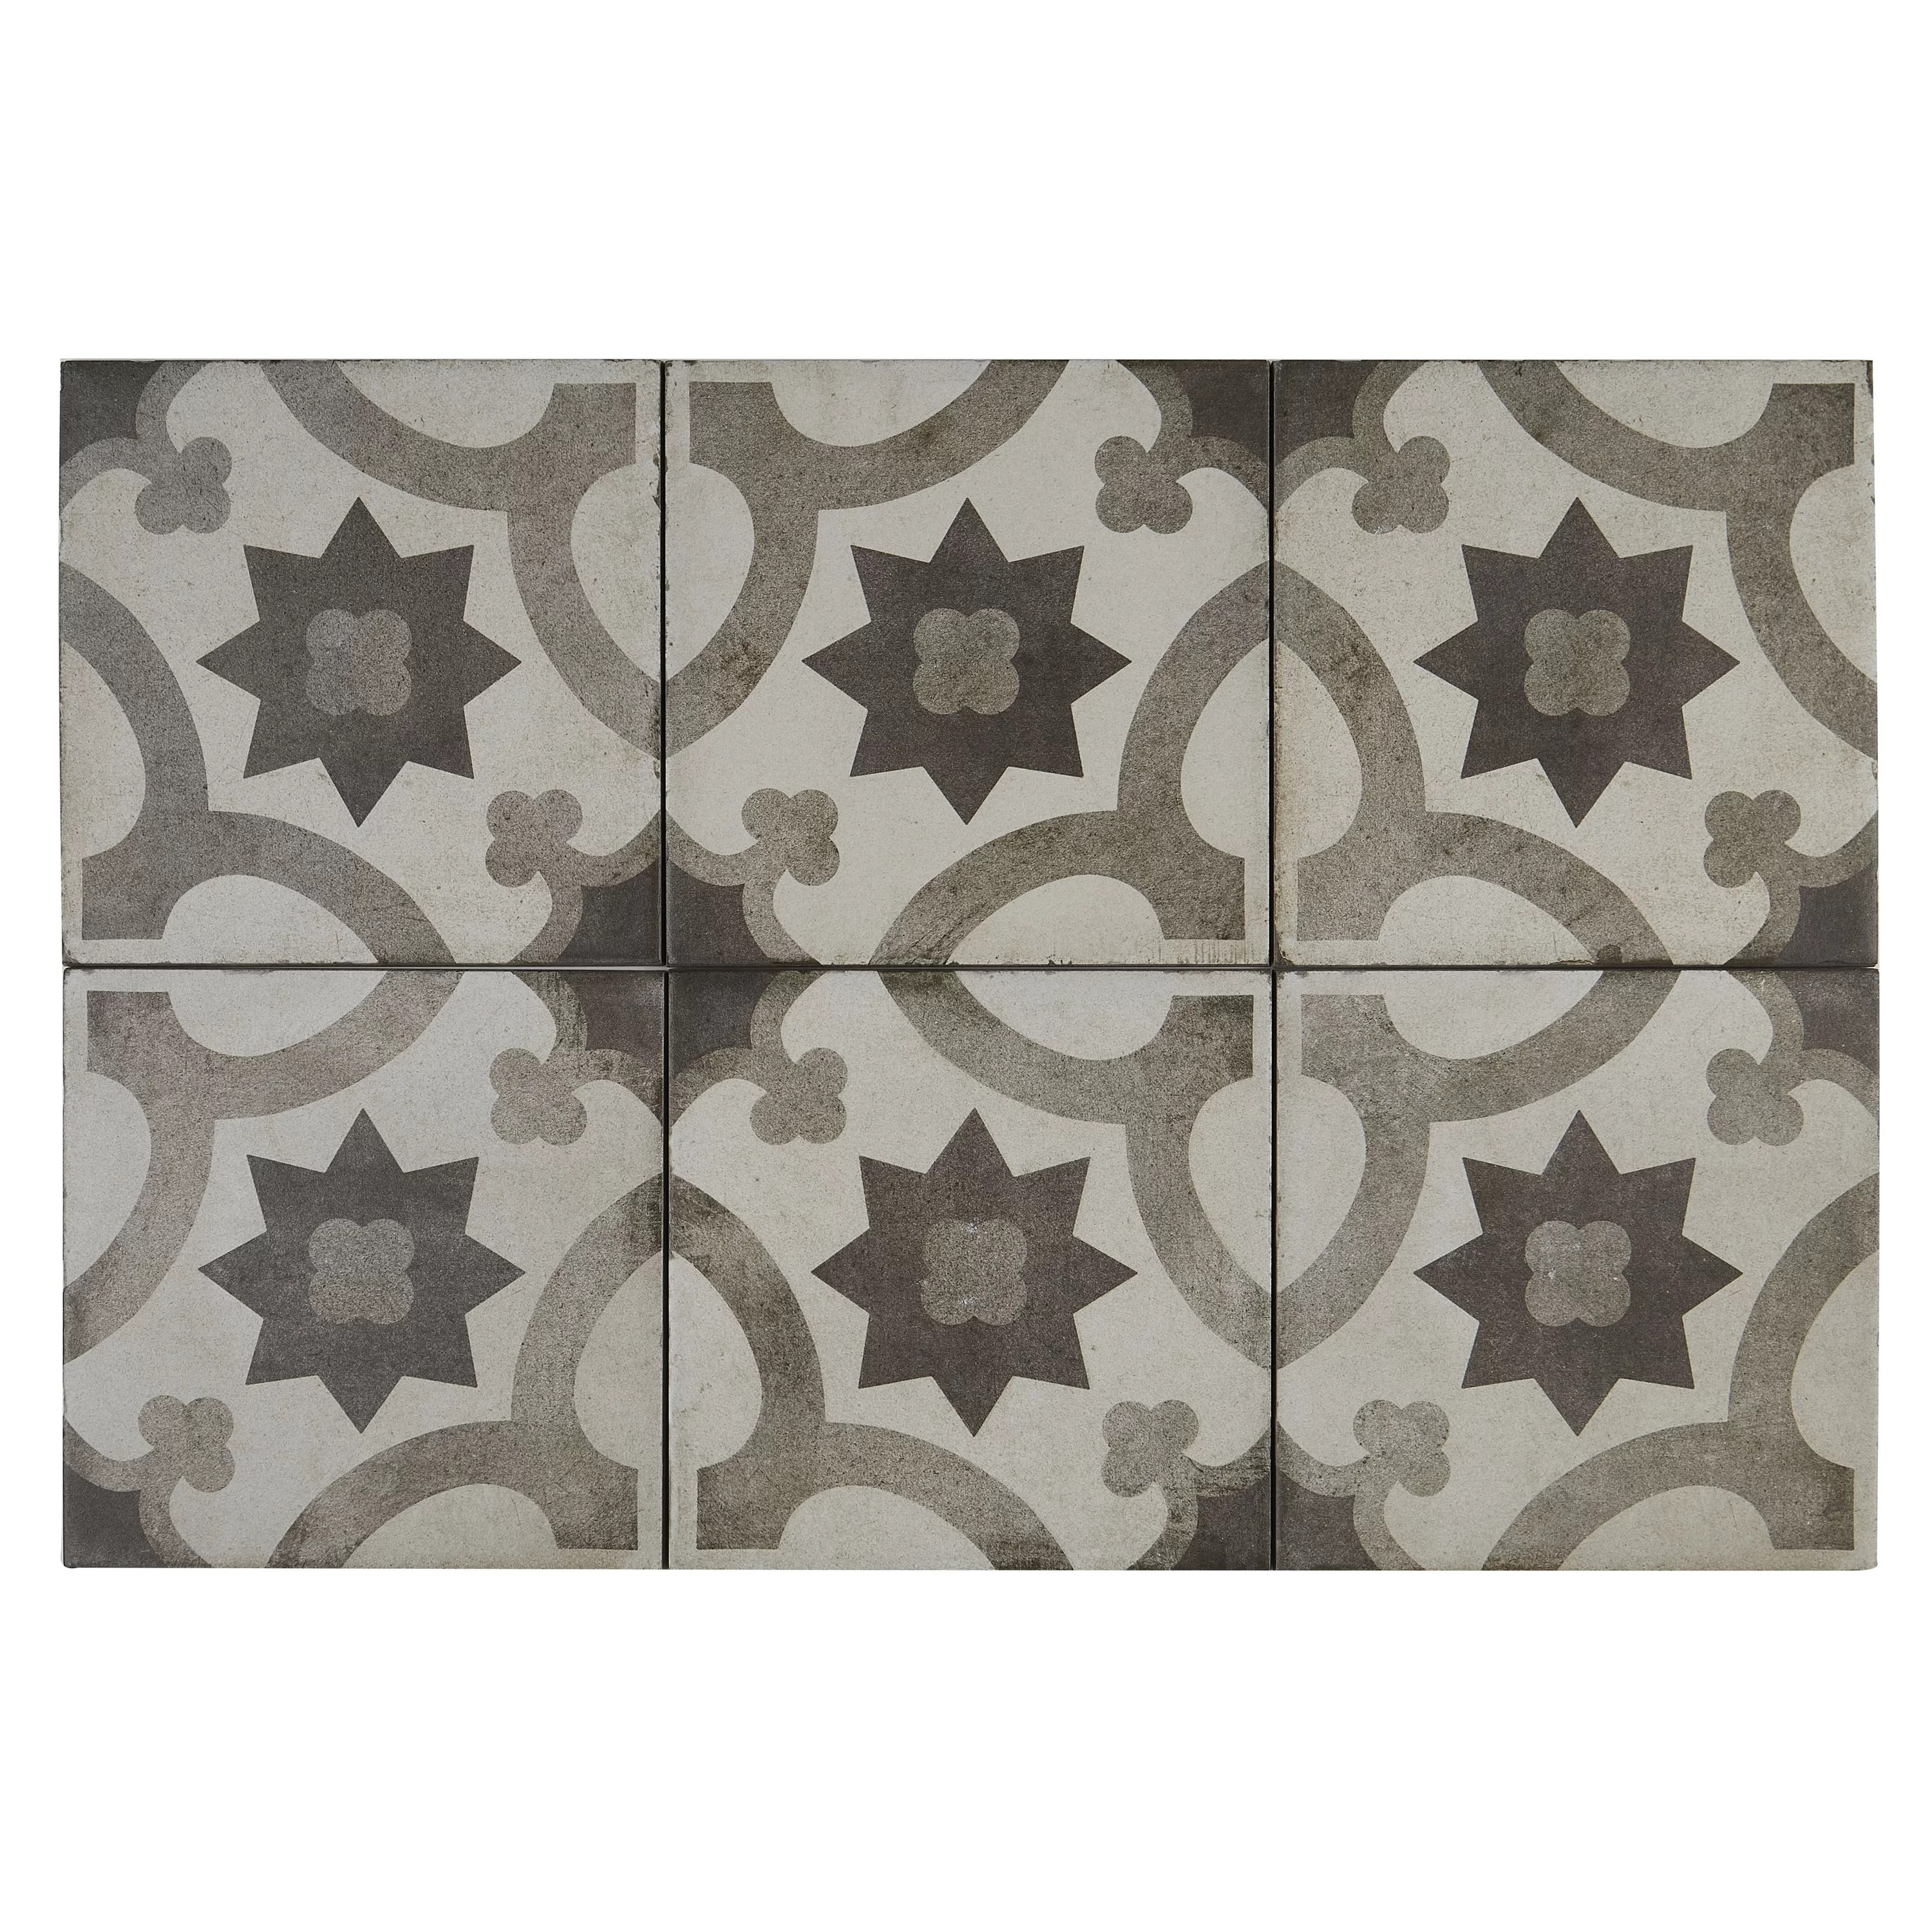 Mix And Match Deco Encausto Hand Made Encaustic Look 8x8 Cool Blend Deco Tile